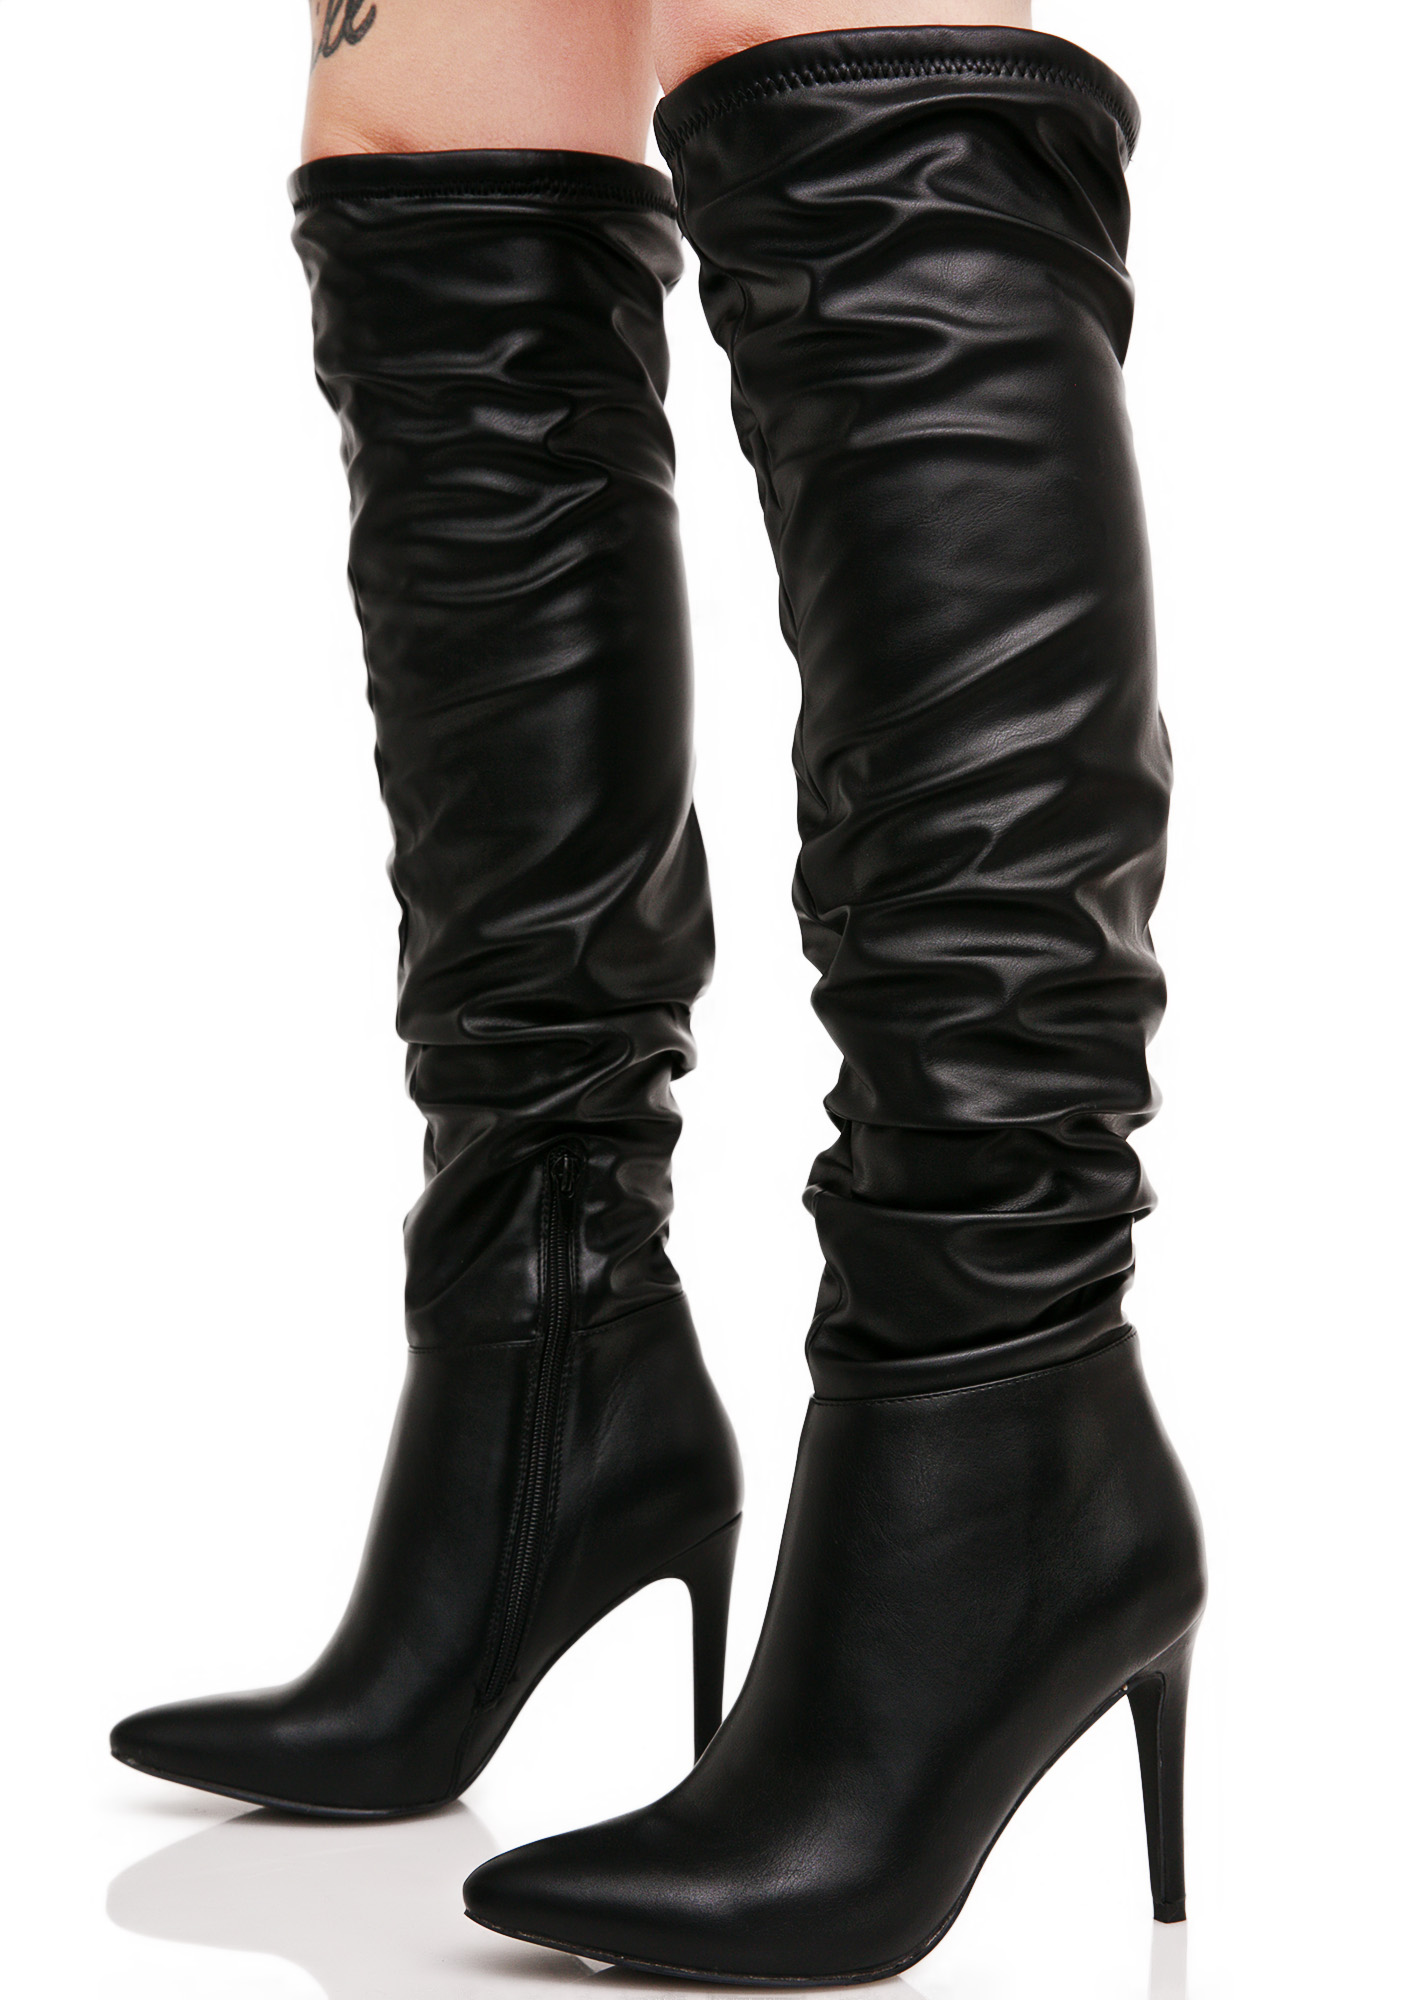 Chinese Laundry Tracy Knee High Boots